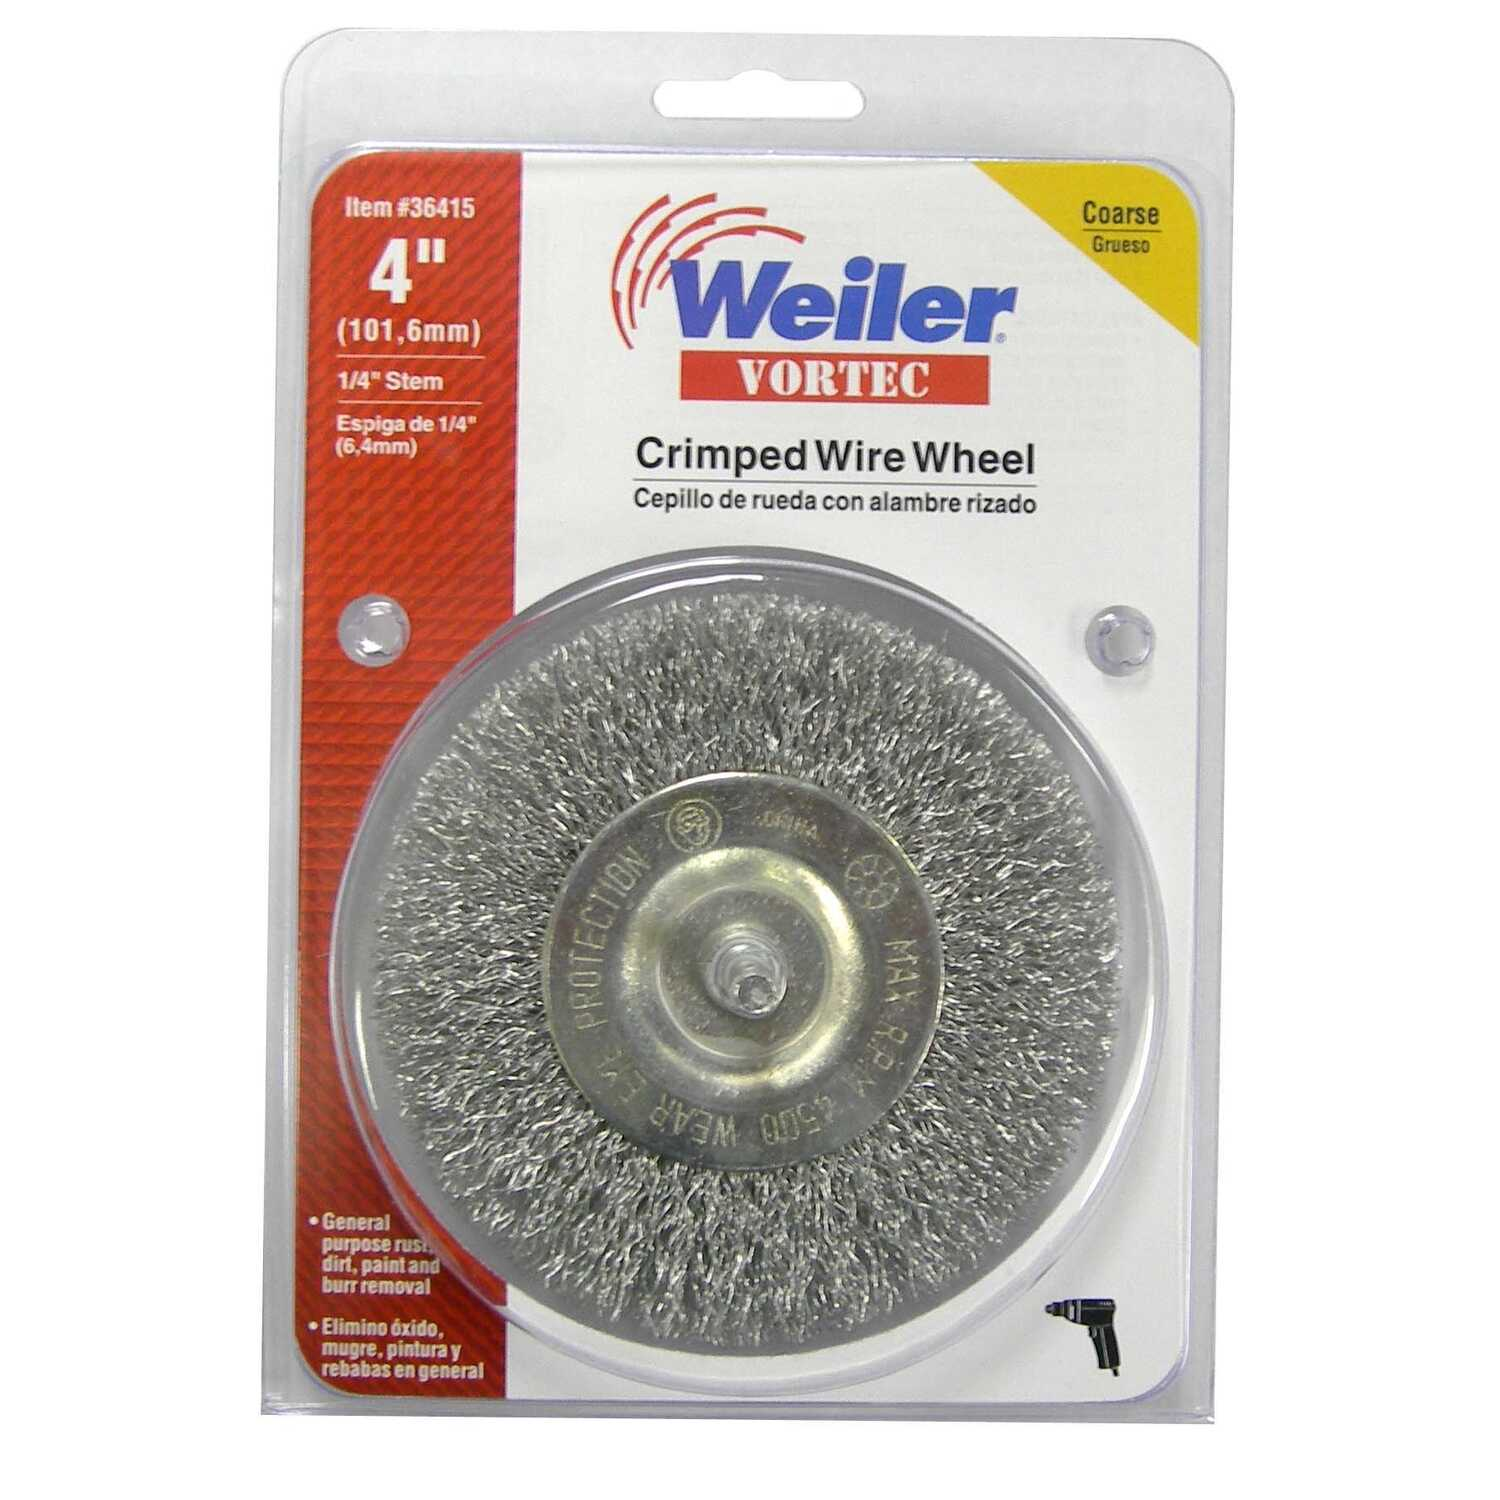 Weiler  Vortec  4 in. Crimped  Wire Wheel  4500 rpm 1 pc.